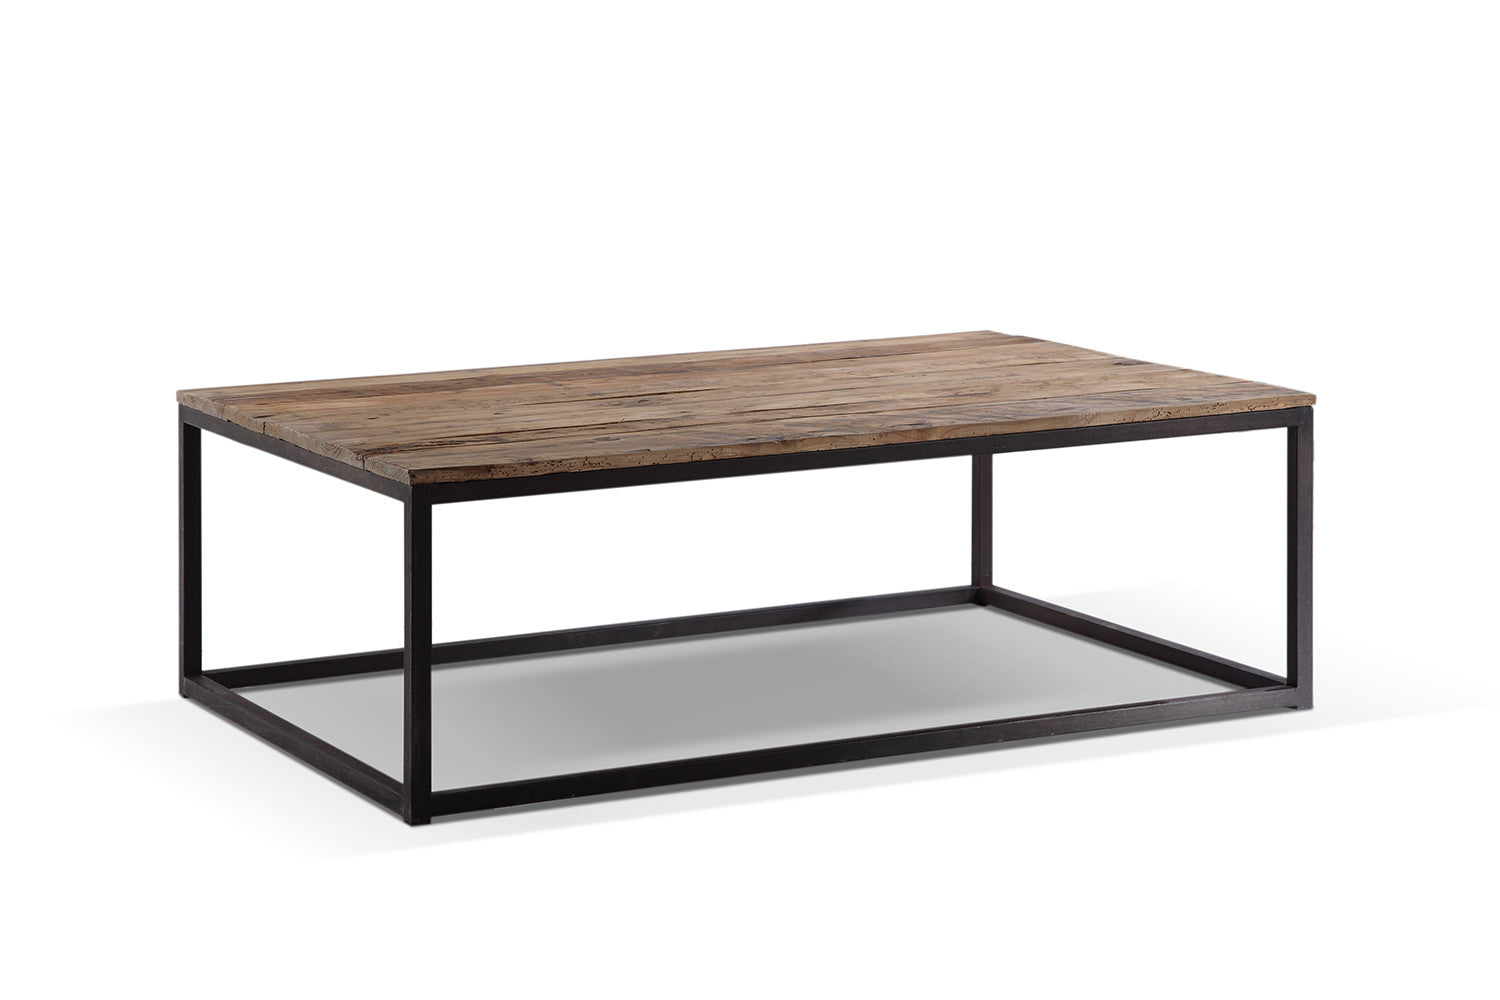 Table basse industrielle en m tal et bois rose moore for Table basse fer et bois